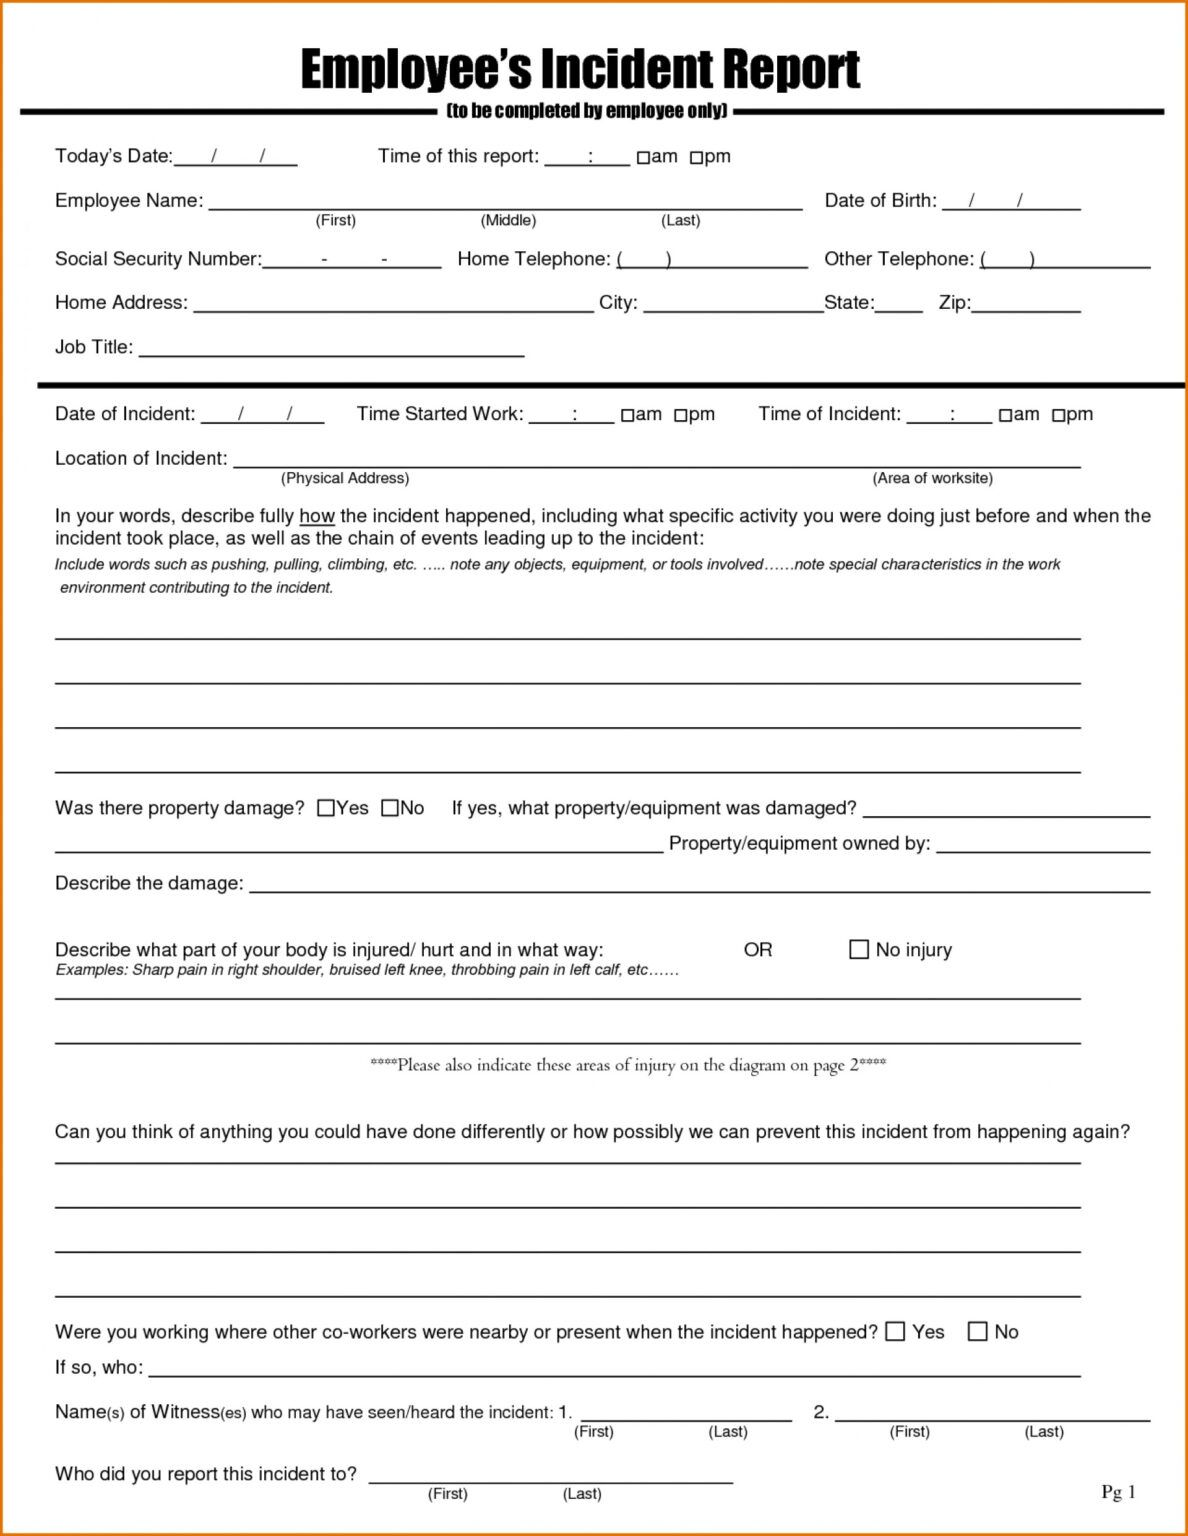 045 Examples Of An Incident Report And Best Photos Employee Within Employee Incident Report Templates Report Card Template Incident Report Form Incident Report